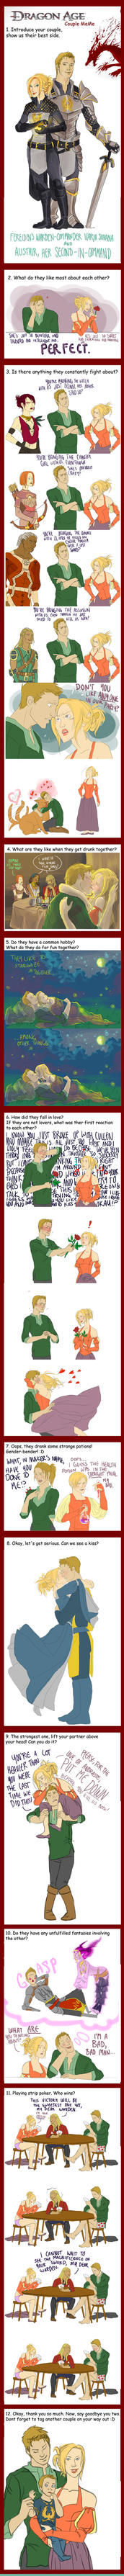 Dragon Age Couples meme: Varia Surana and Alistair by ParisWriter